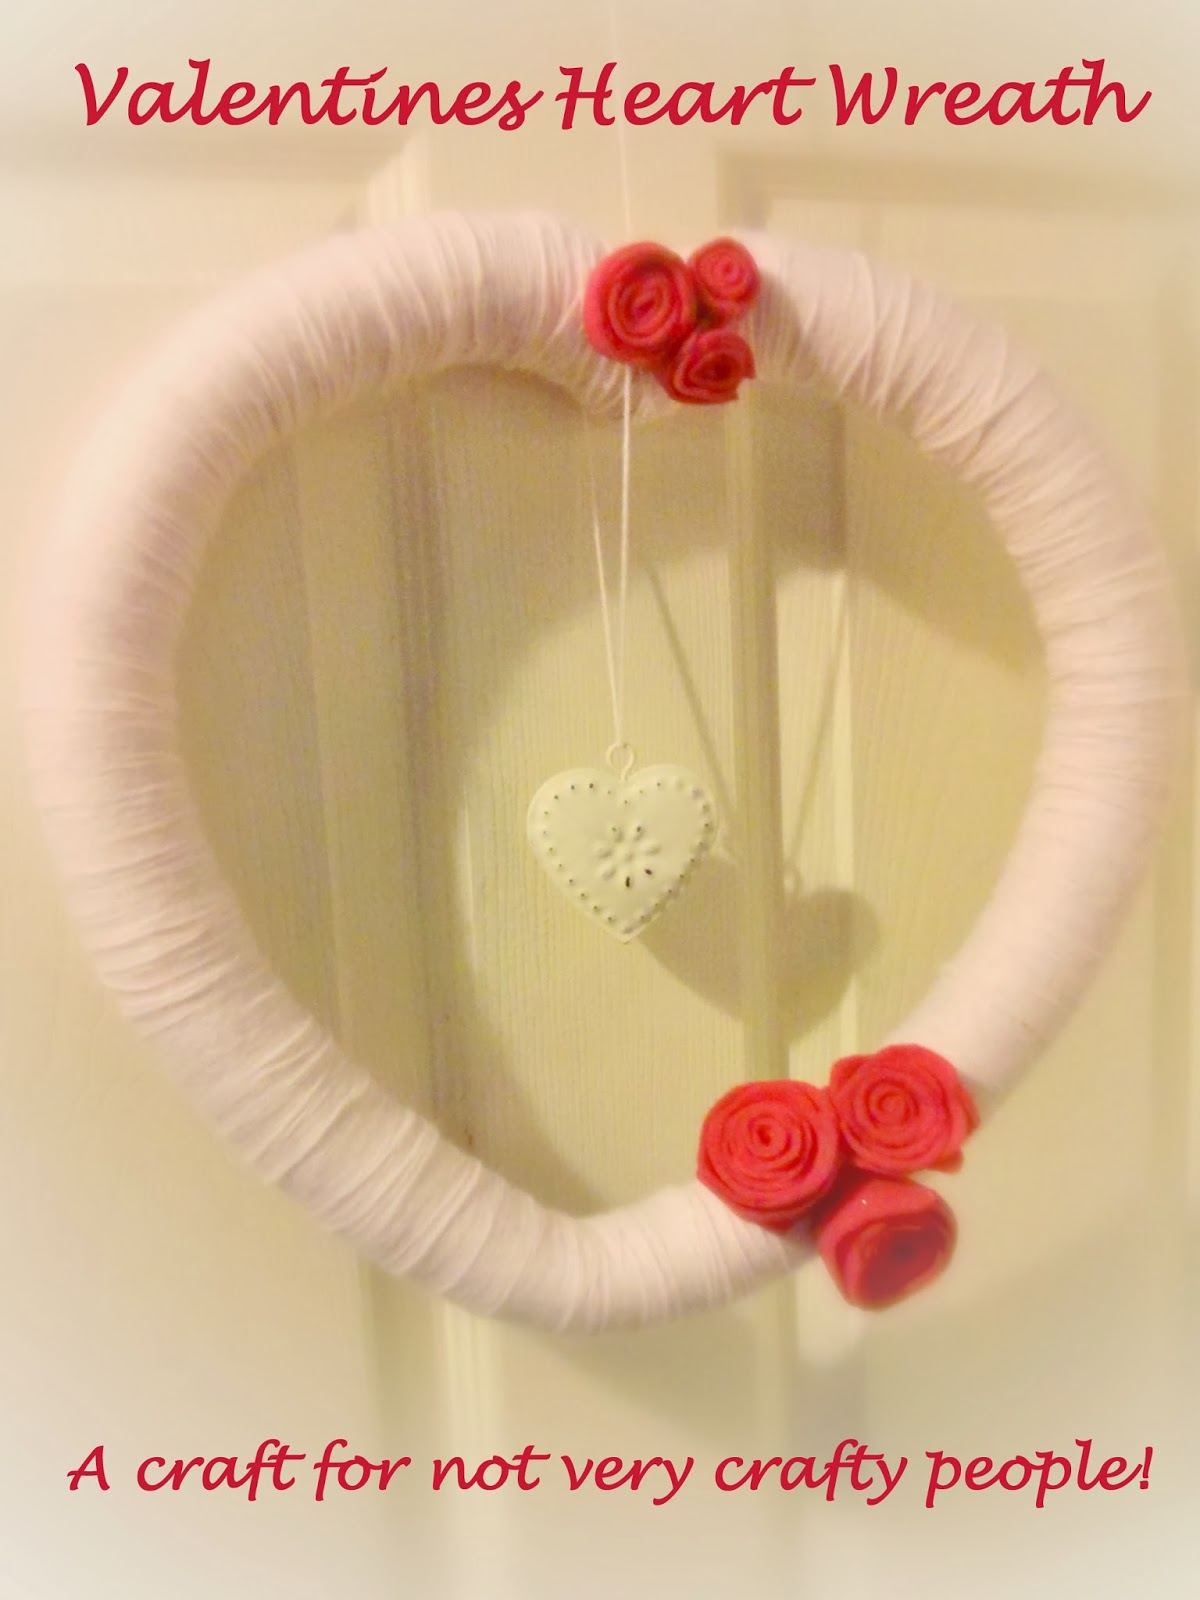 Valentines Heart Wreath Tutorial, a craft for not very crafty people!